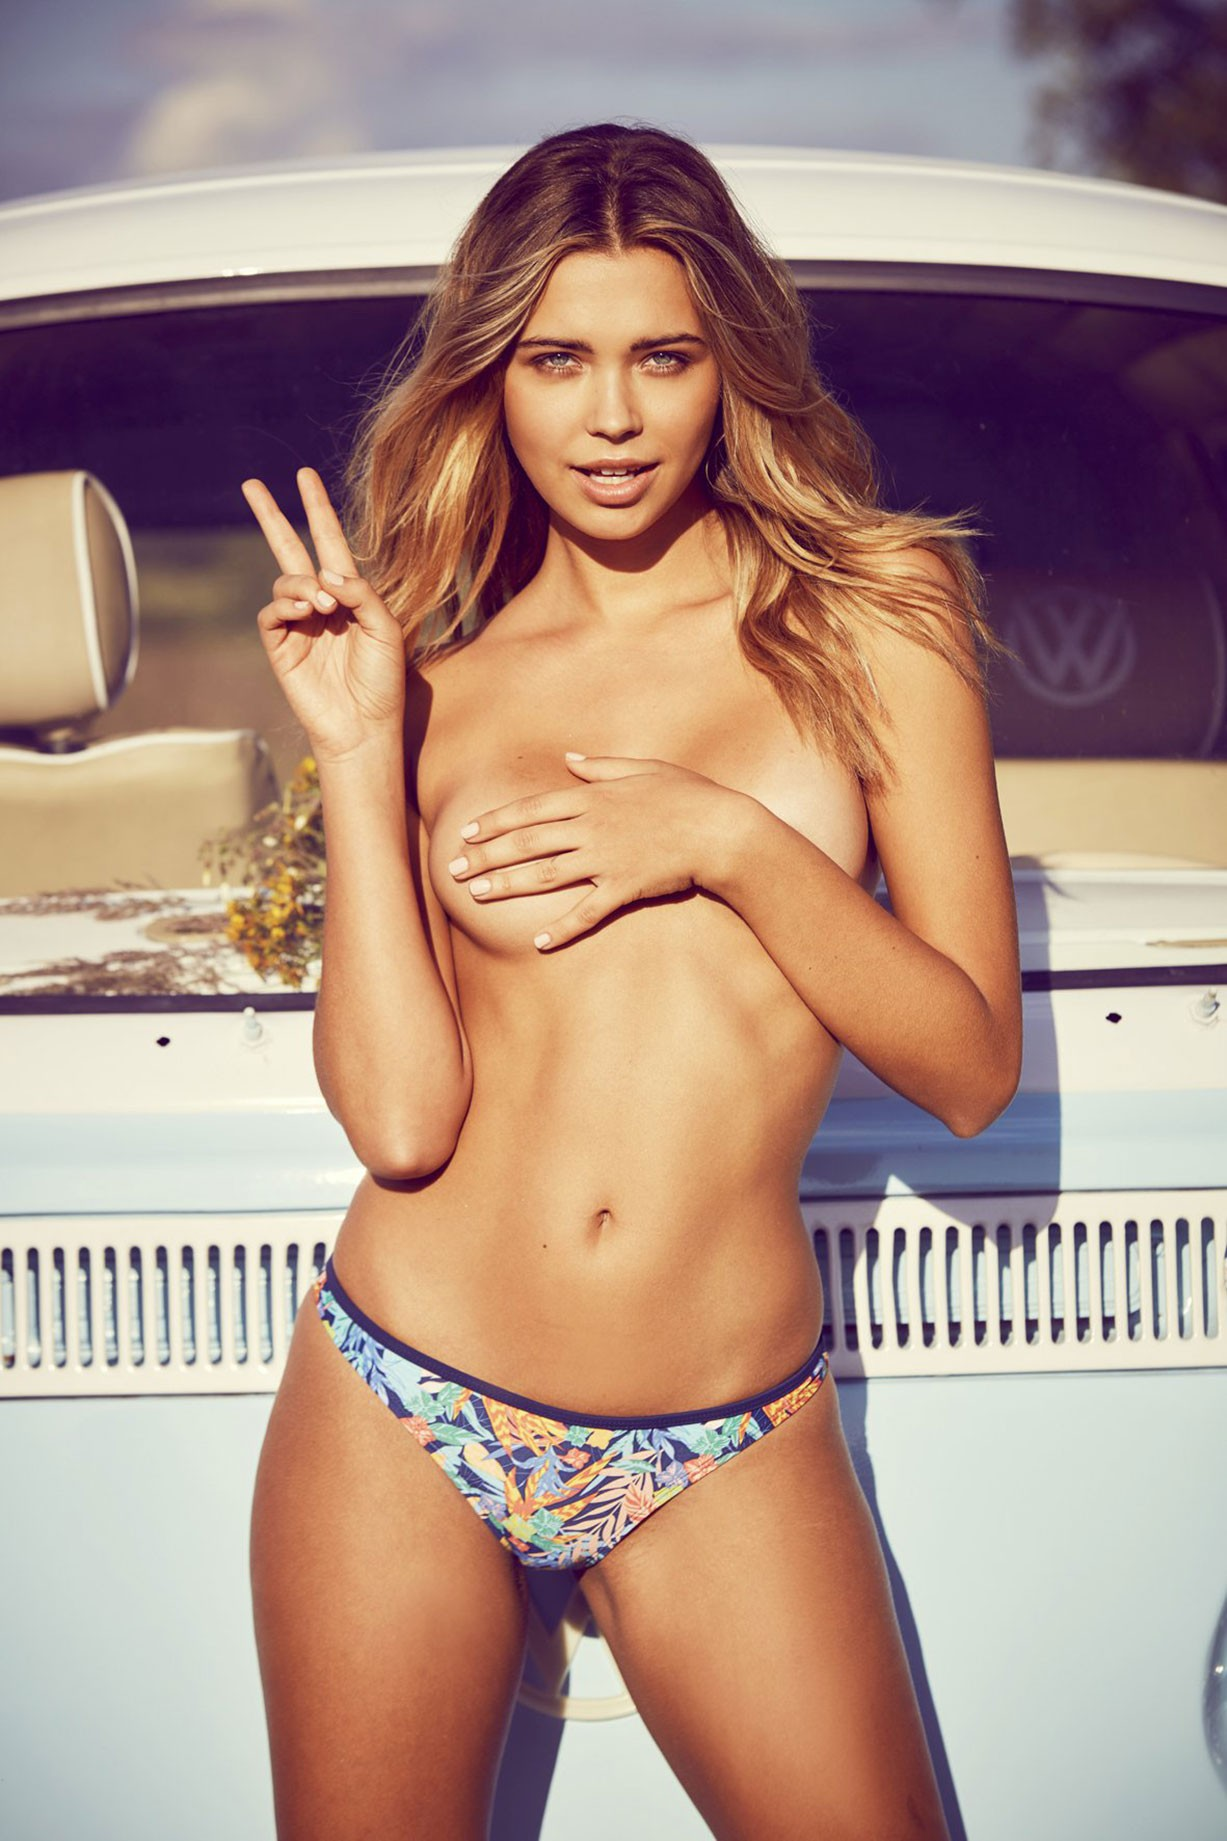 Sandra Kubicka nude in Playboy Poland september 2017 / photo by Robby Cyron